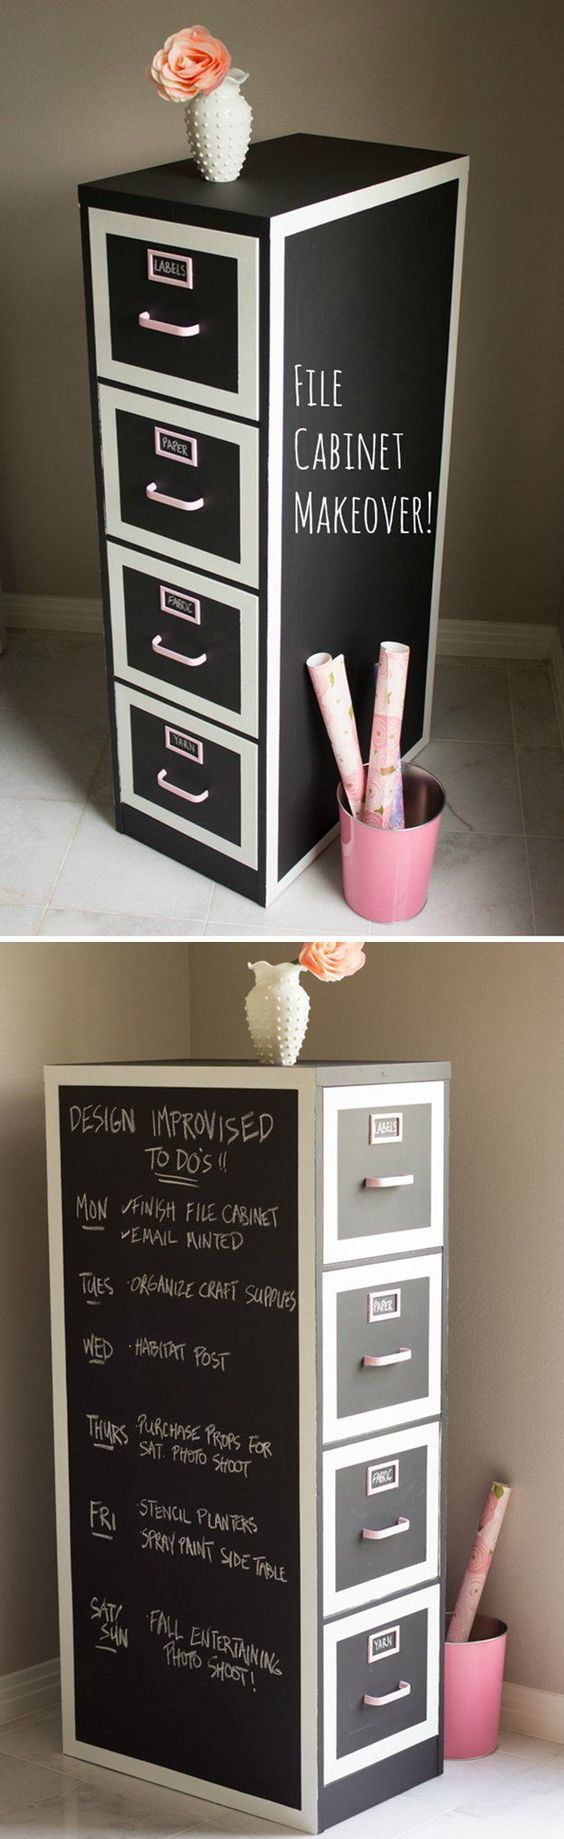 DIY Cabinets Makeover with Chalk Paint | File Cabinet Makeover by DIY Ready at http://diyready.com/16-more-diy-chalk-paint-furniture-ideas/